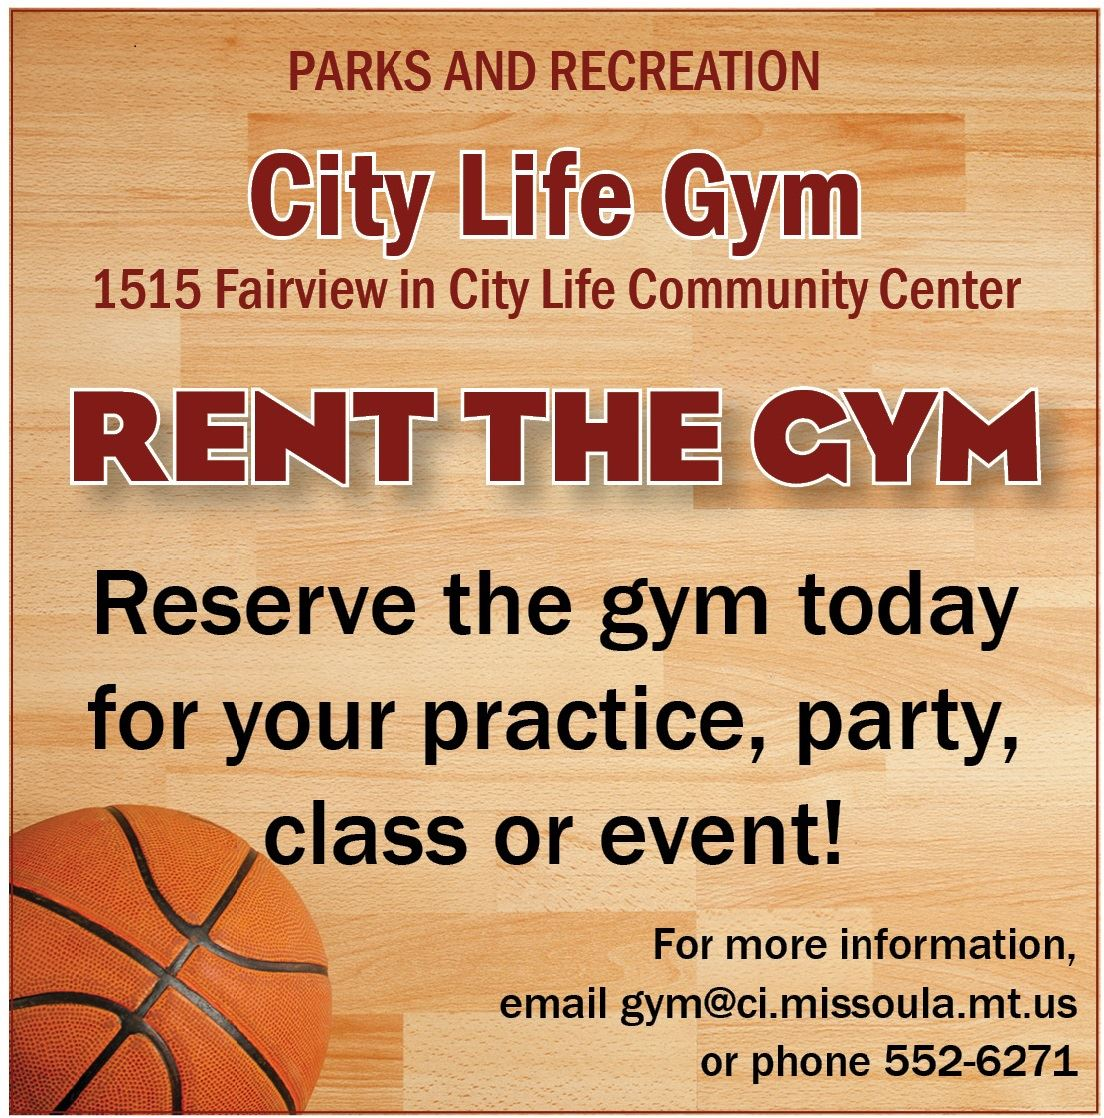 Rent The Gym ad